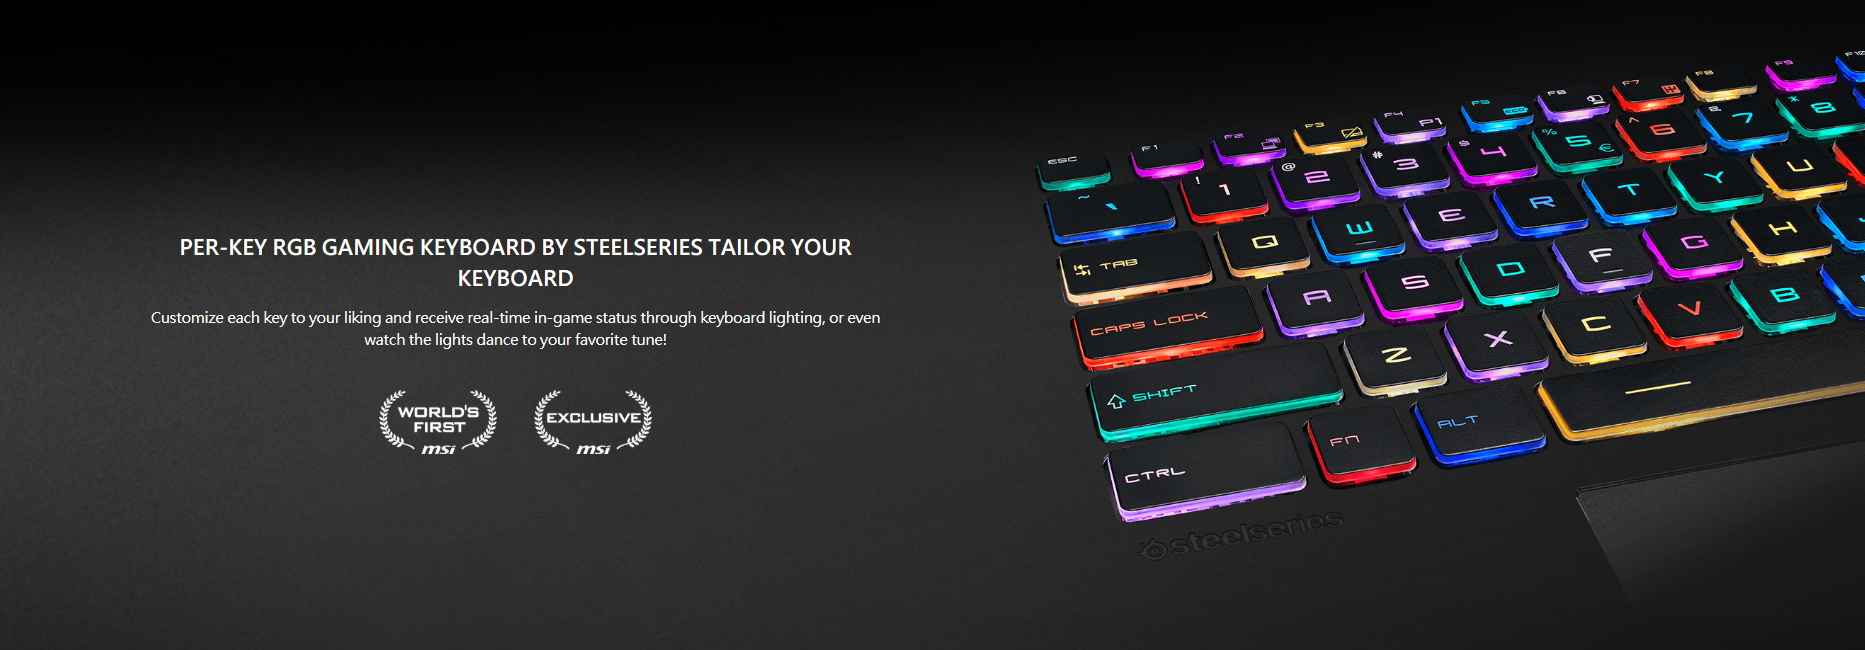 Customize each key to your liking and receive real-time in-game status through keyboard lighting, or even watch the lights dance to your favorite tune!